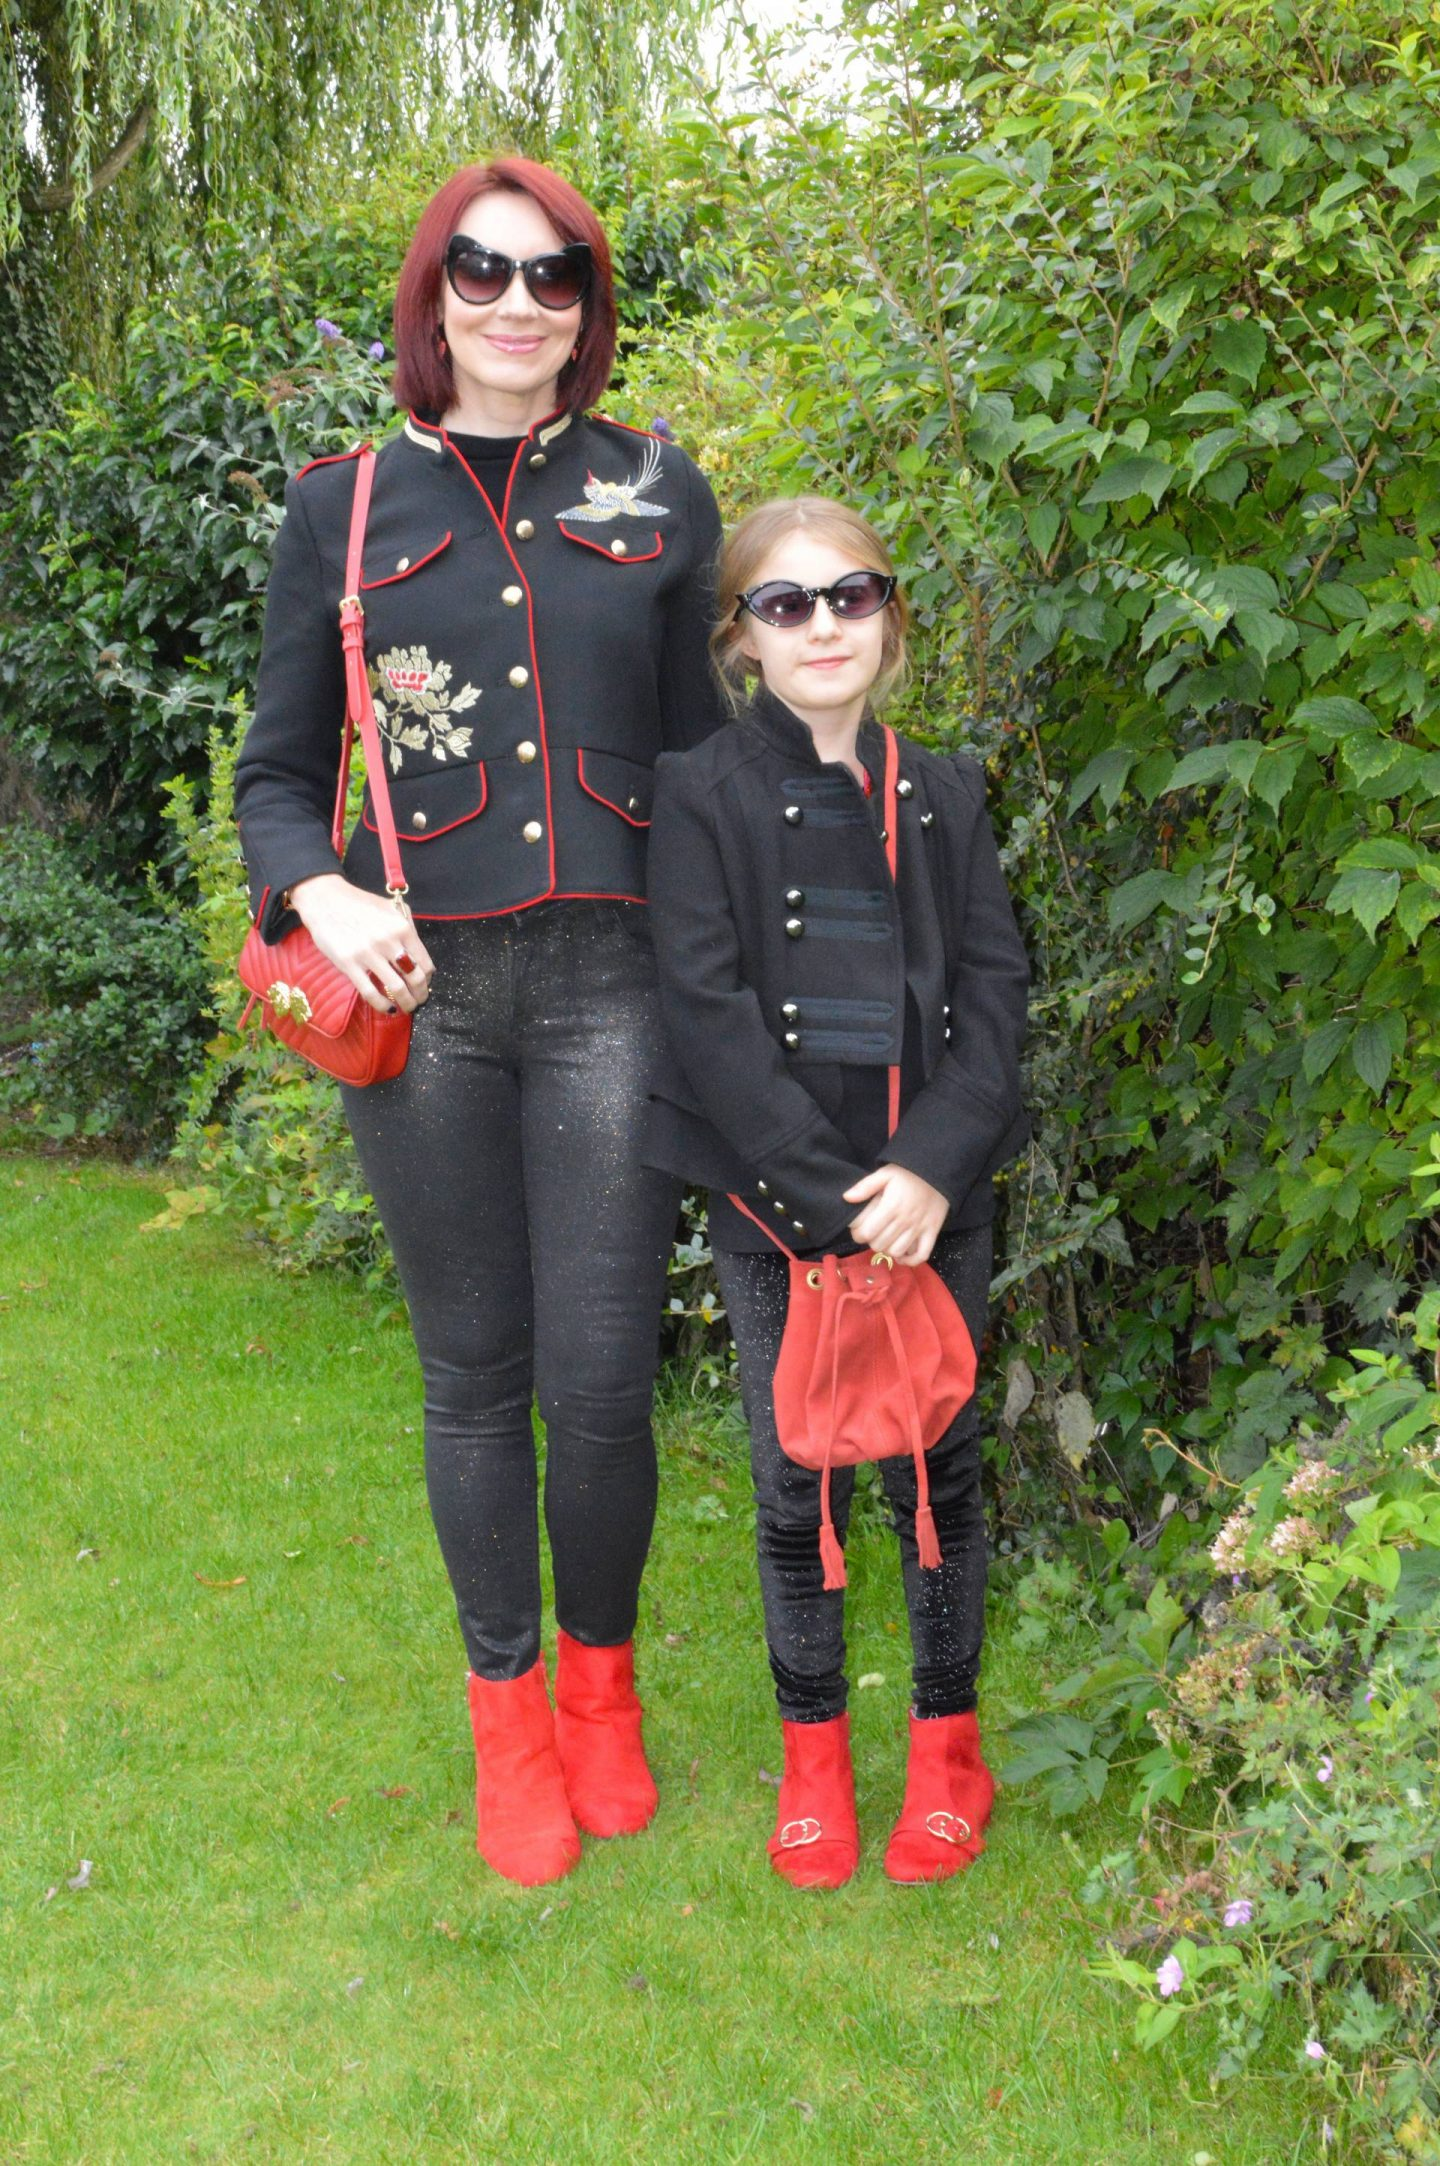 Military Jackets and Red Ankle Boots